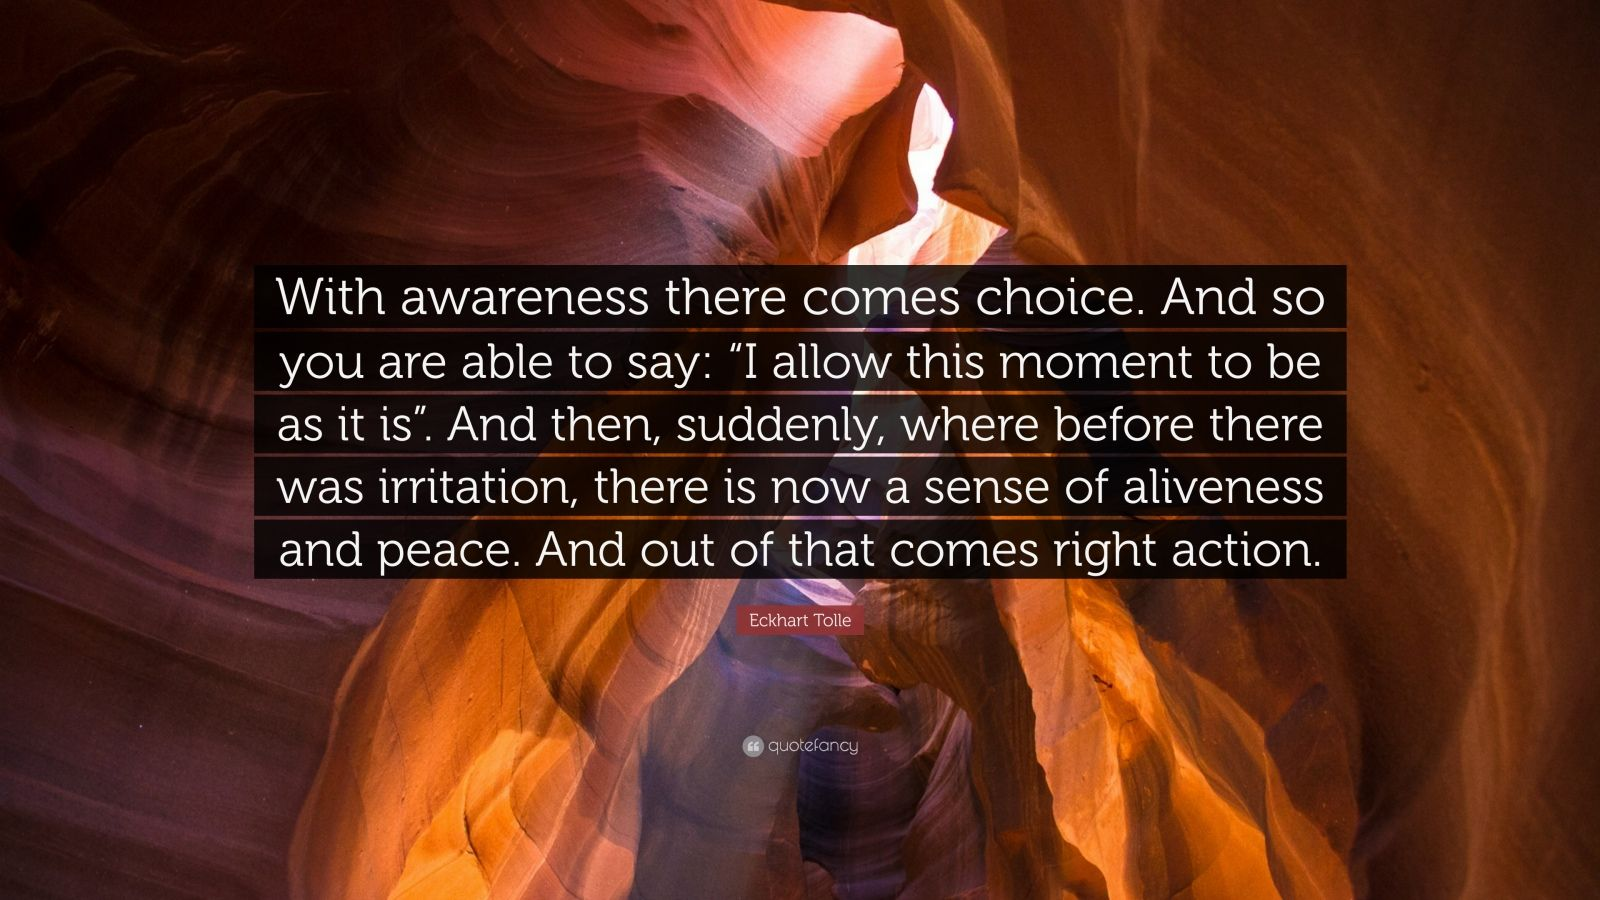 """Eckhart Tolle Quote: """"With awareness there comes choice. And so you are able to say: """"I allow this moment to be as it is"""". And then, suddenly, where before there was irritation, there is now a sense of aliveness and peace. And out of that comes right action."""""""